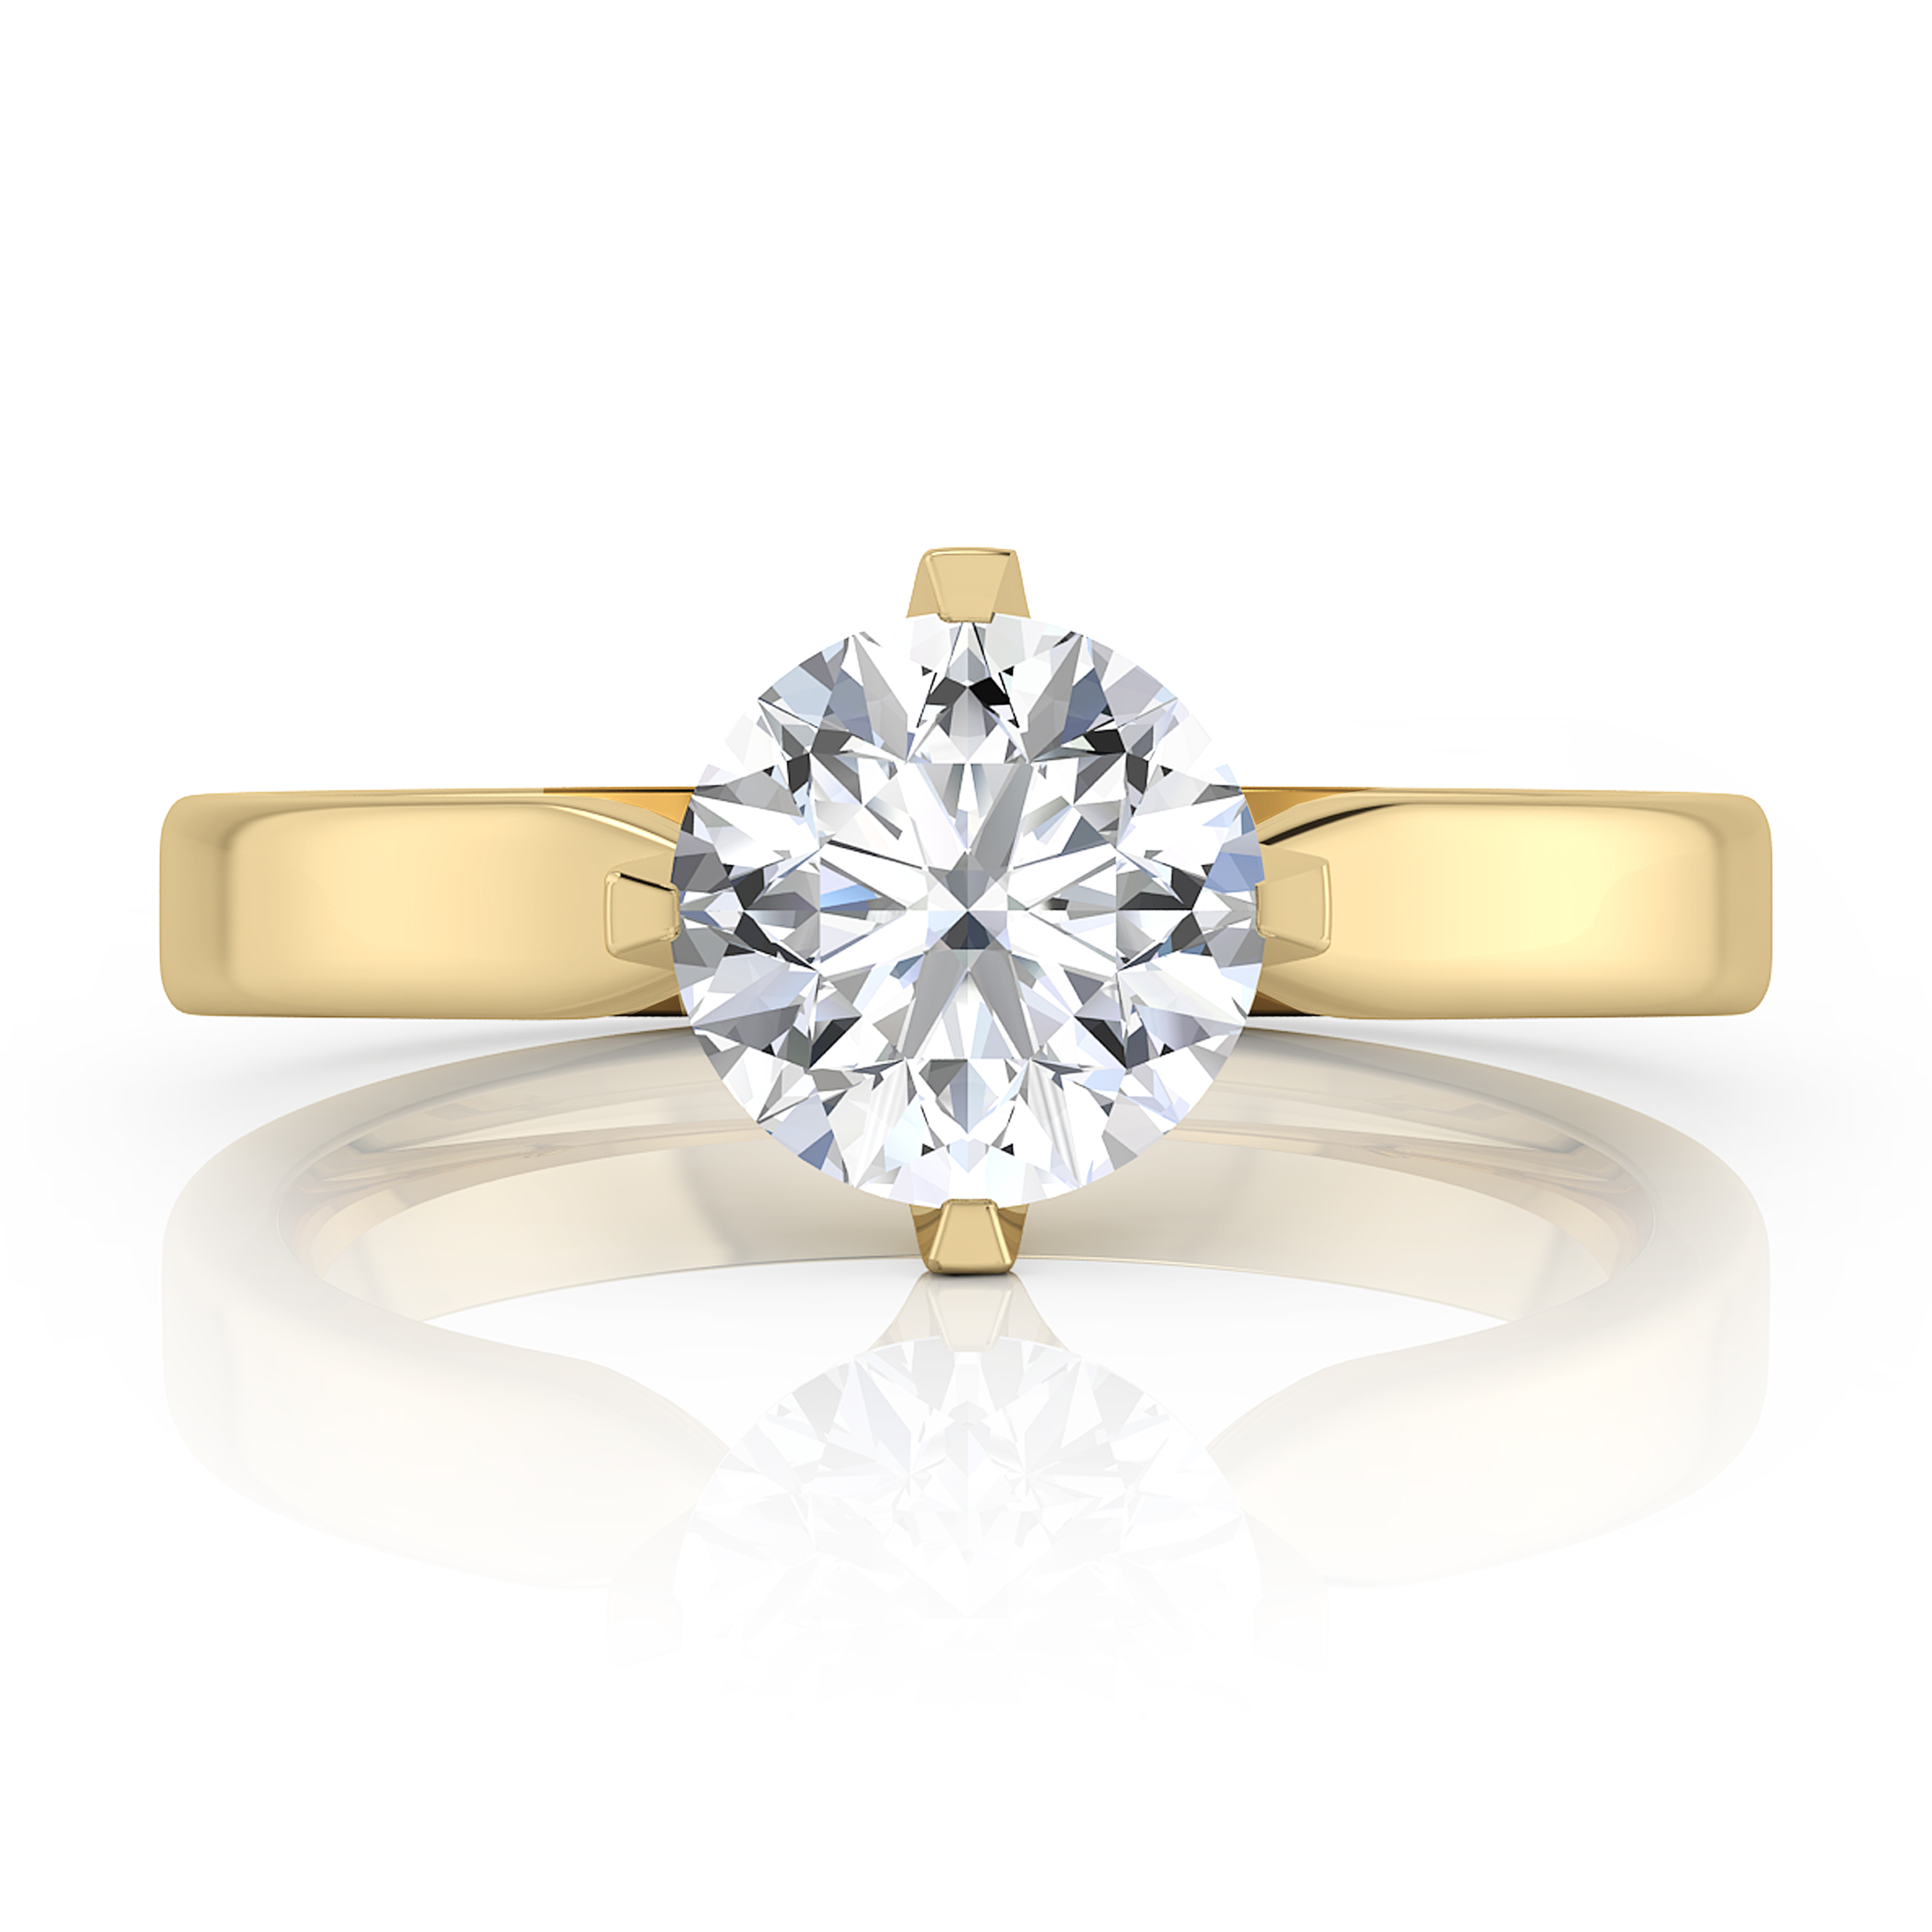 Selected engagement ring, four points, solitary style, 18 k yellow gold